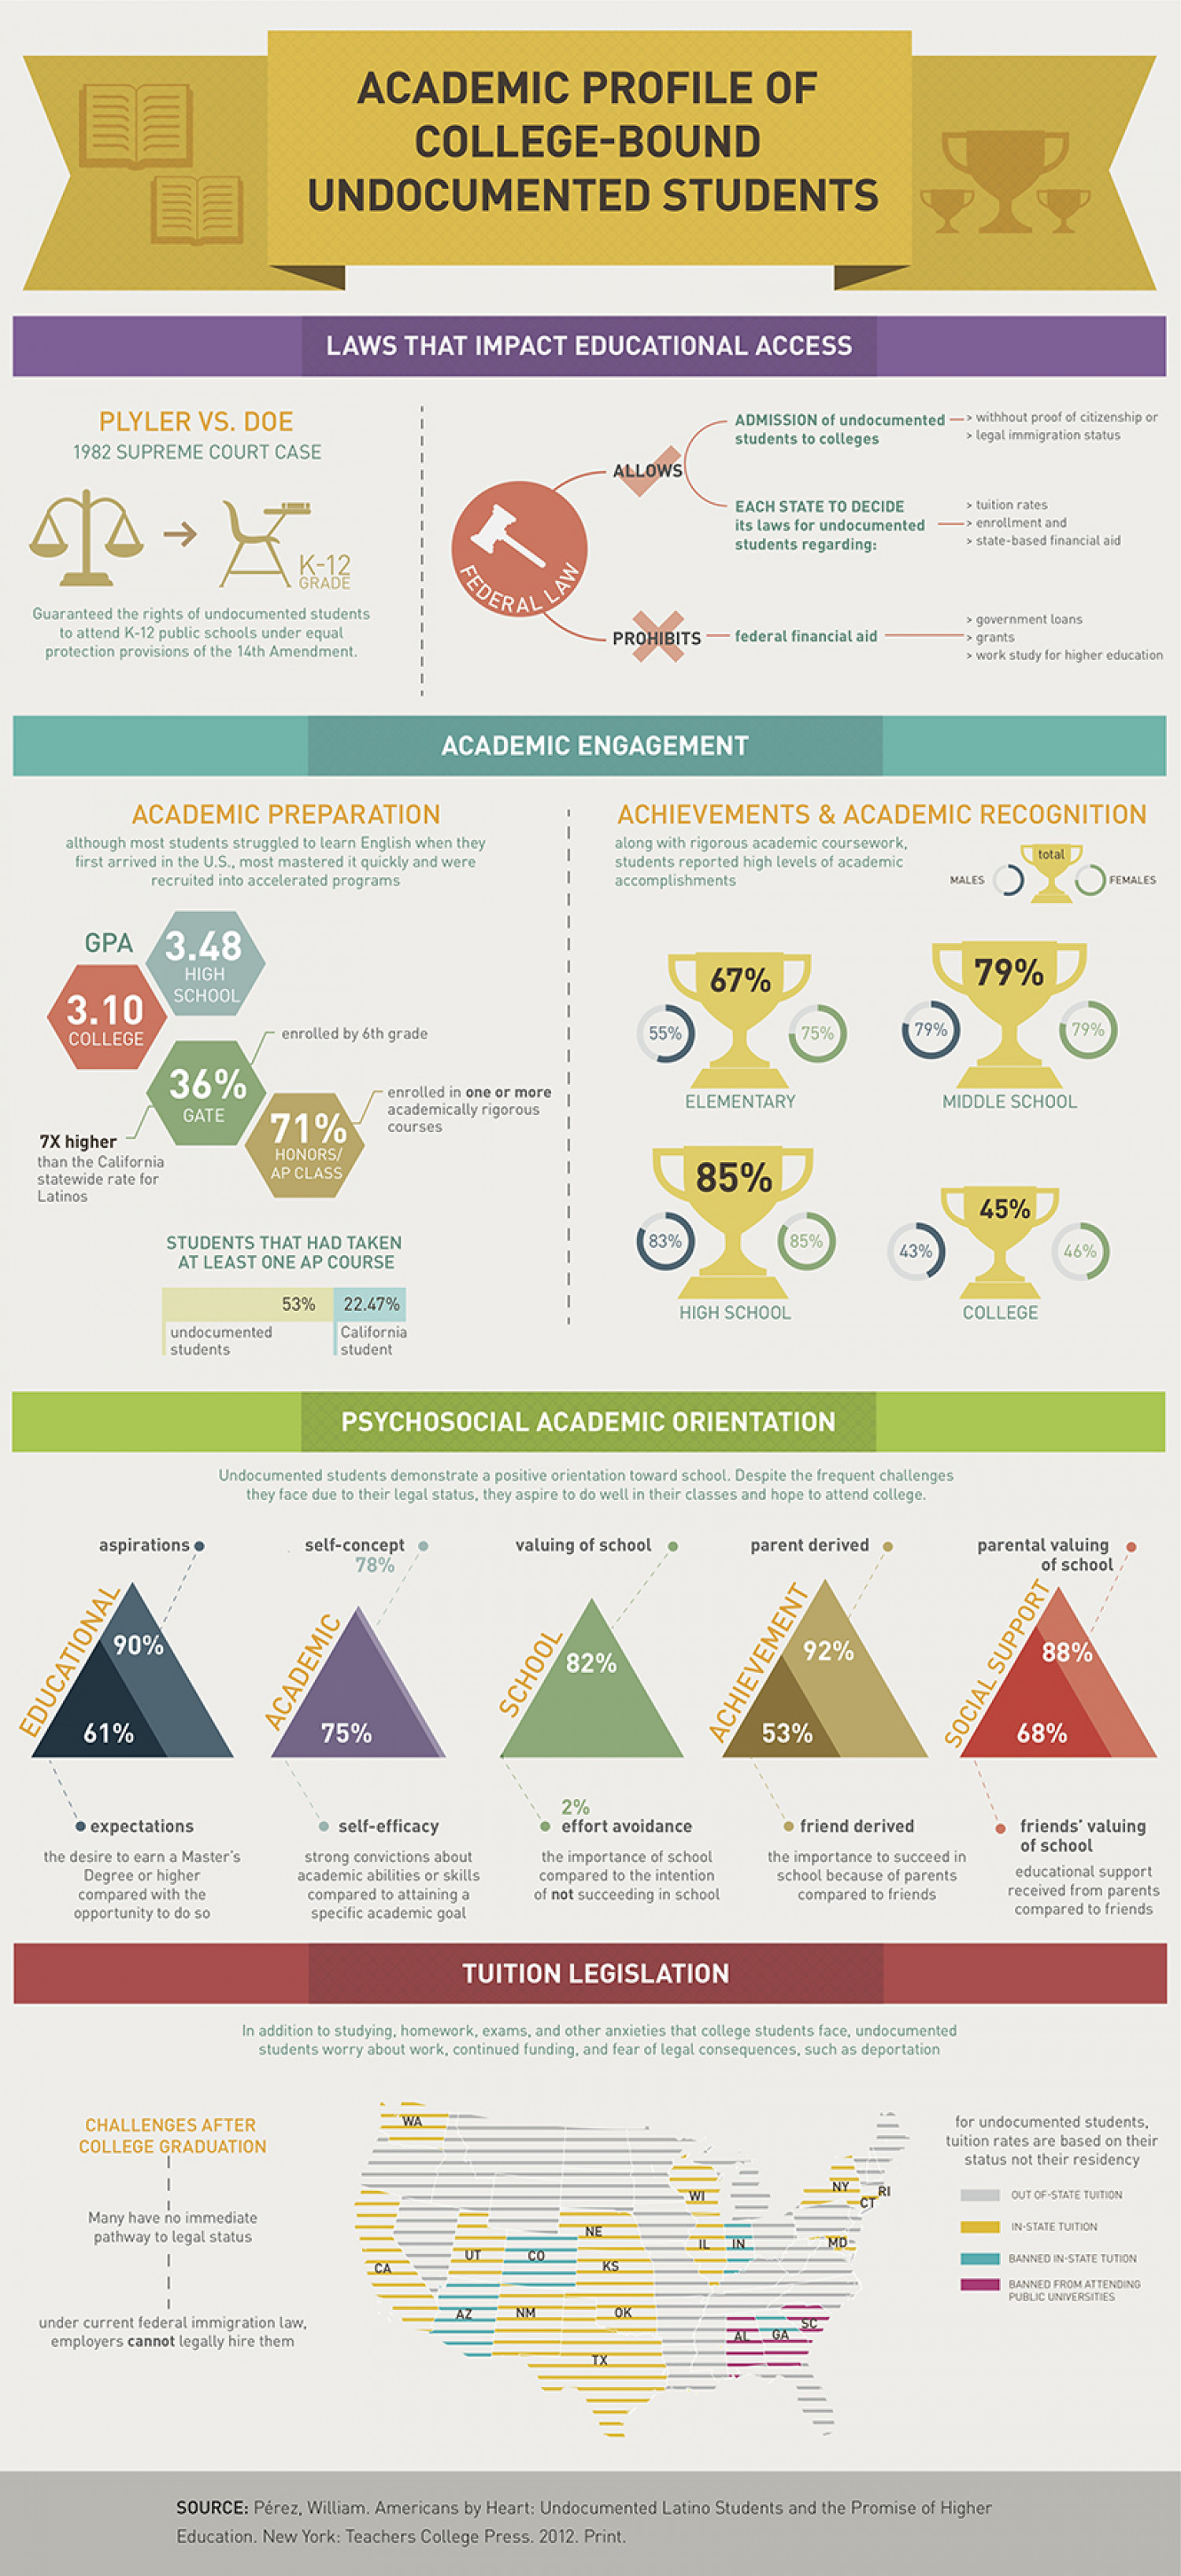 Academic Profile of College-Bound Undocumented Students Infographic